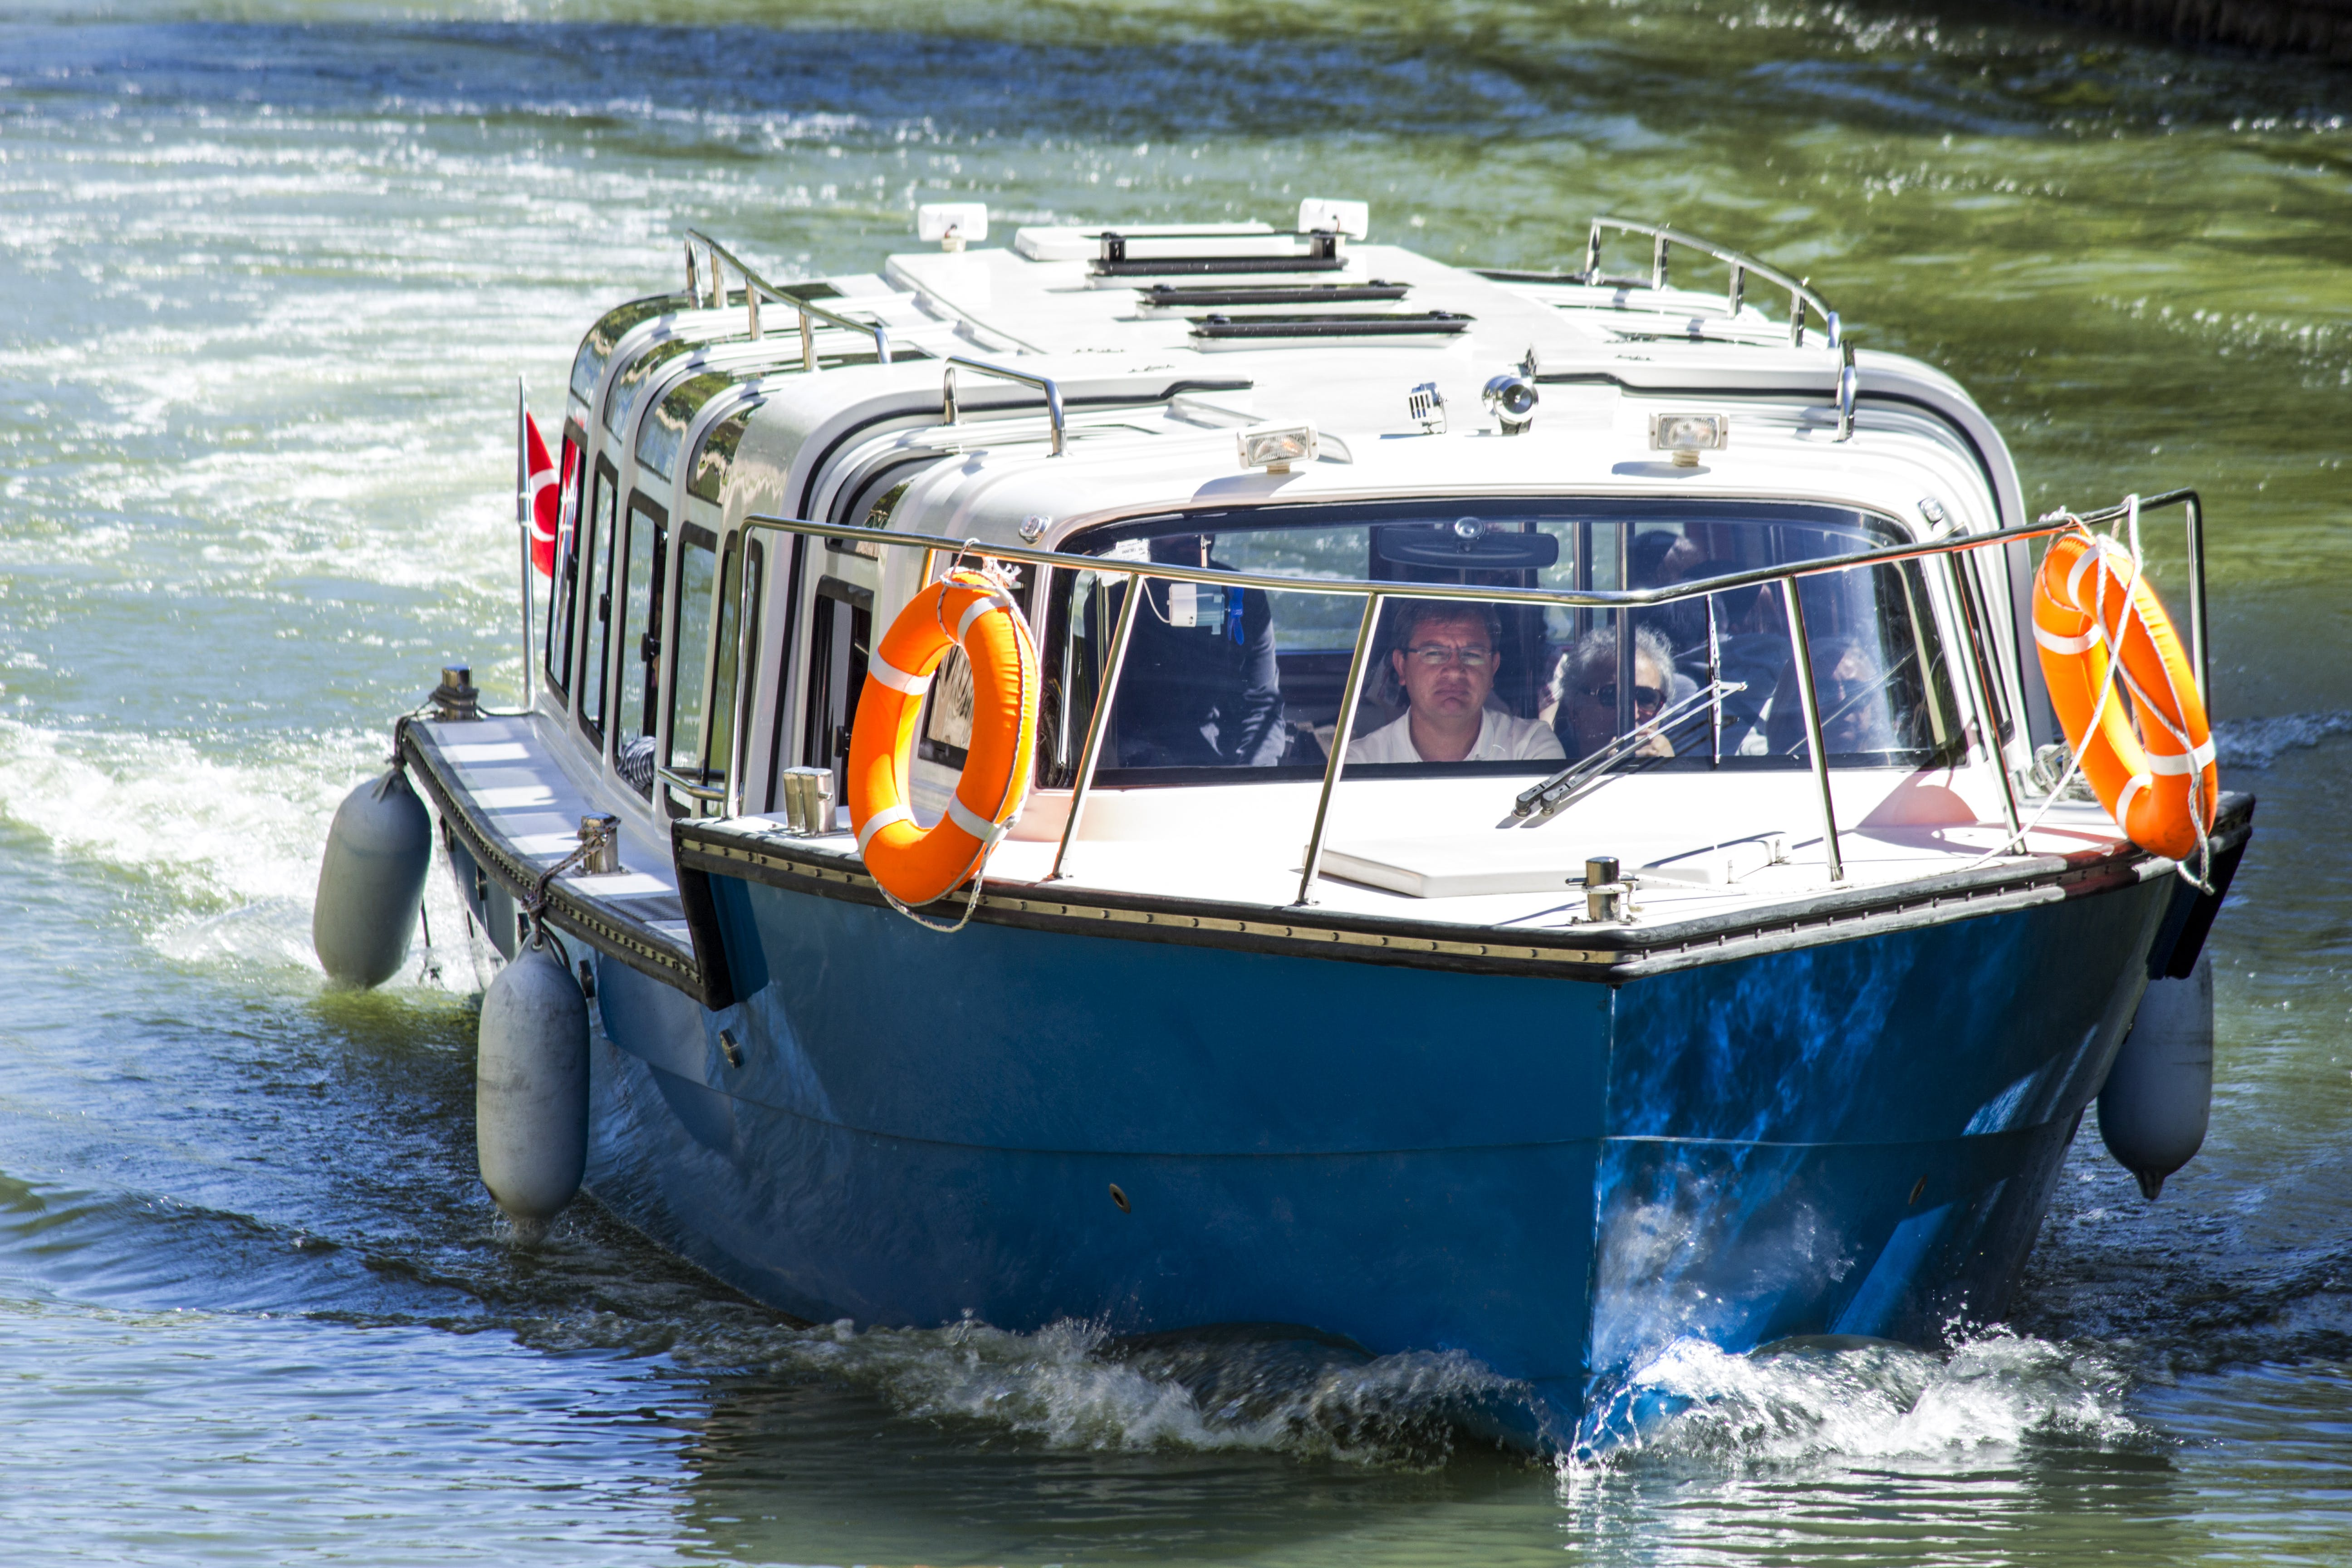 Man in White Shirt Driving Blue and White Boat